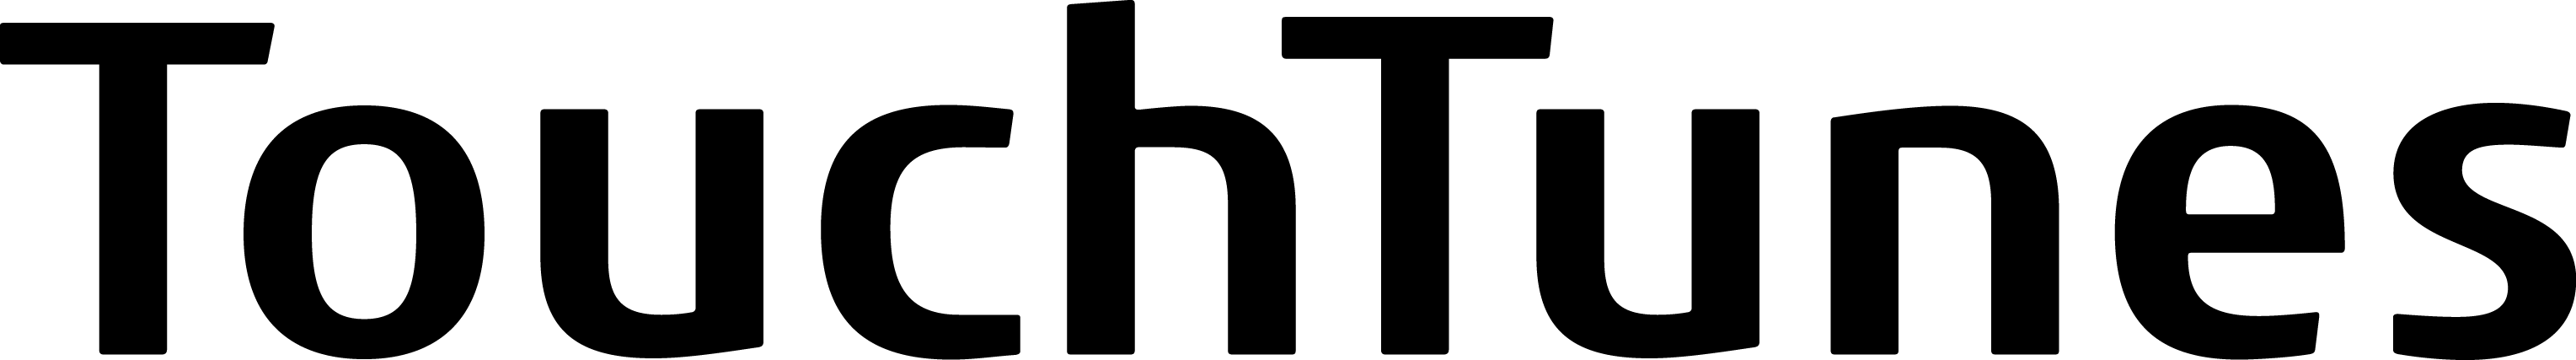 A logo of the company TouchTunes